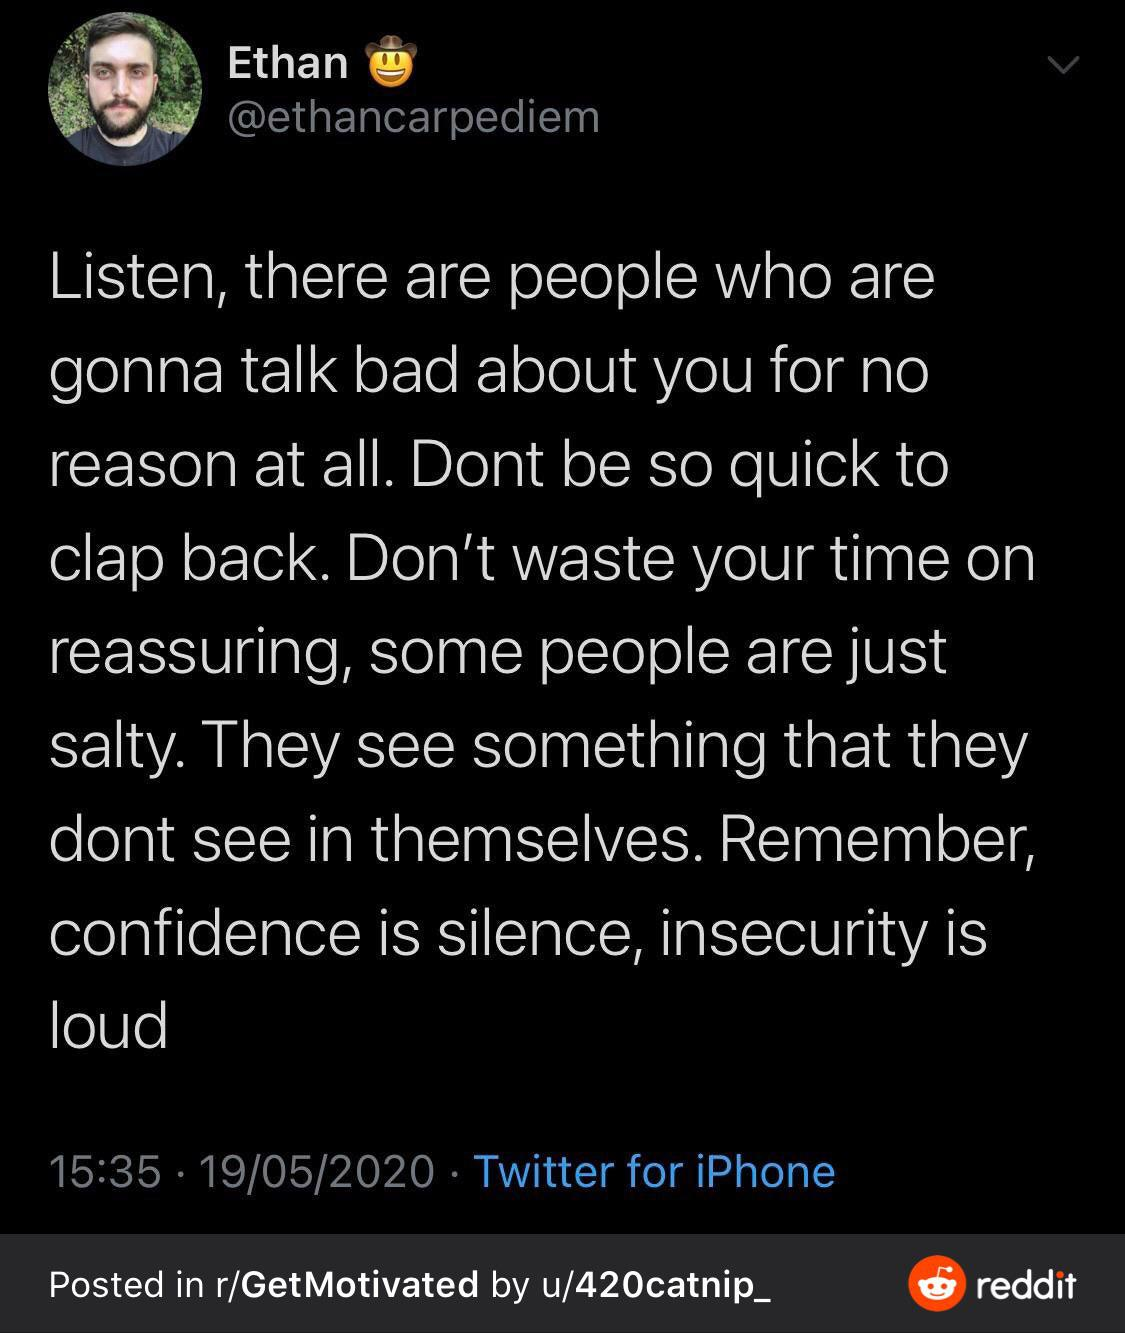 """[Image] """"Confidence is silent, insecurities are loud."""" I cannot believe how much that put things into perspective for me. Being aggressive does not make their point more valid."""